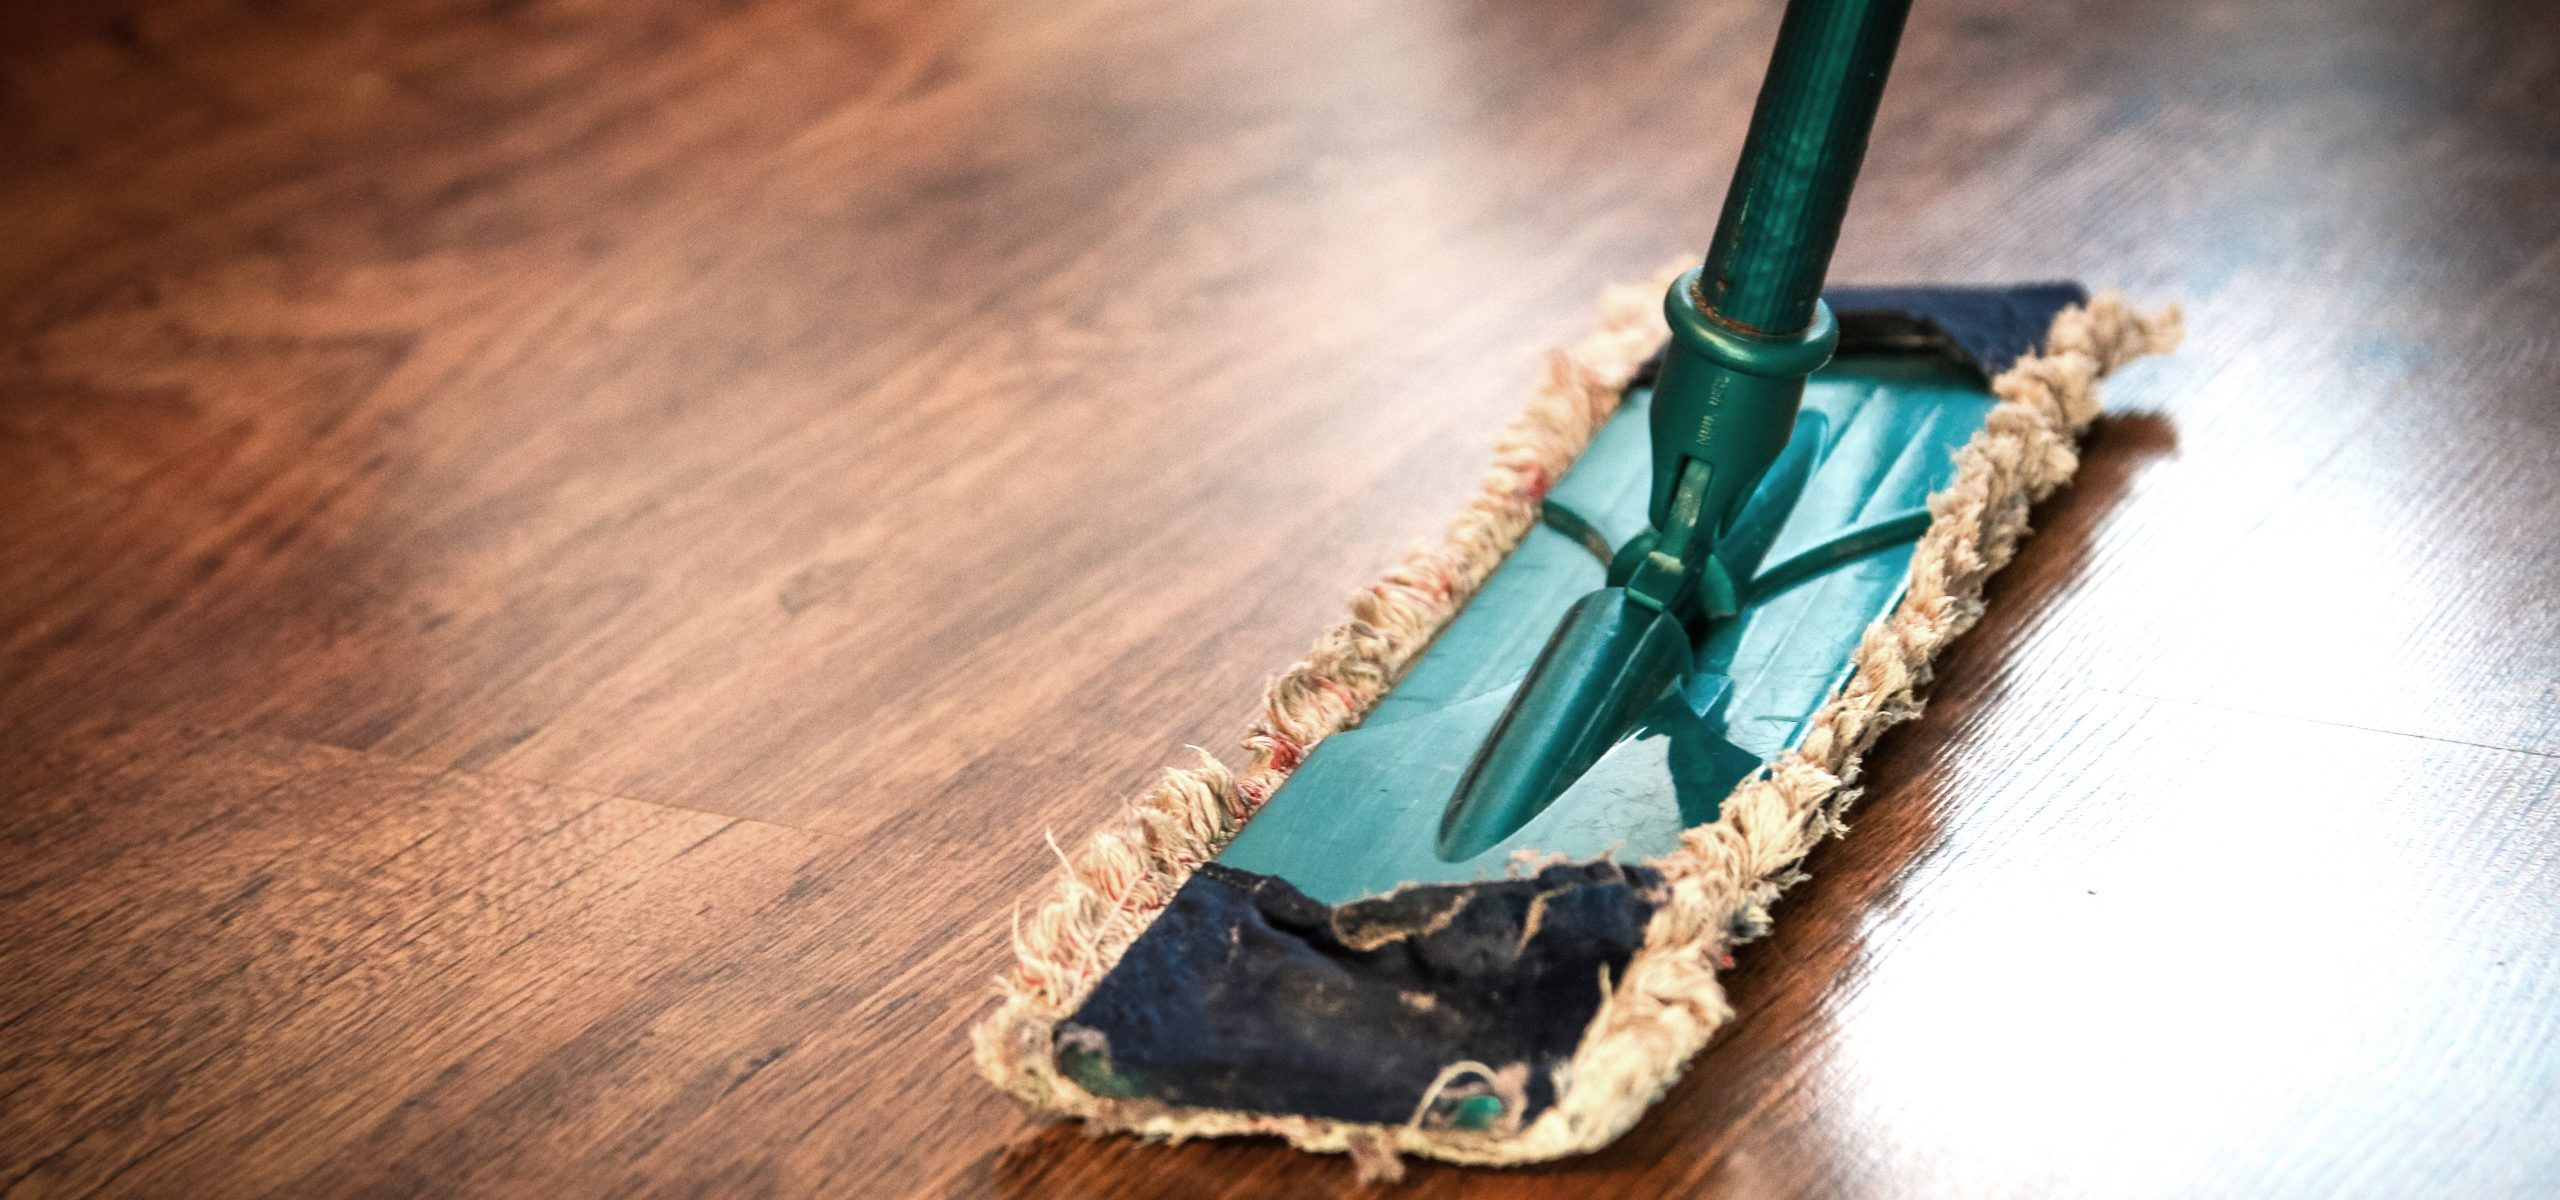 A mop head and soft towel ready to clean a wooden floor with DIY floor cleaner